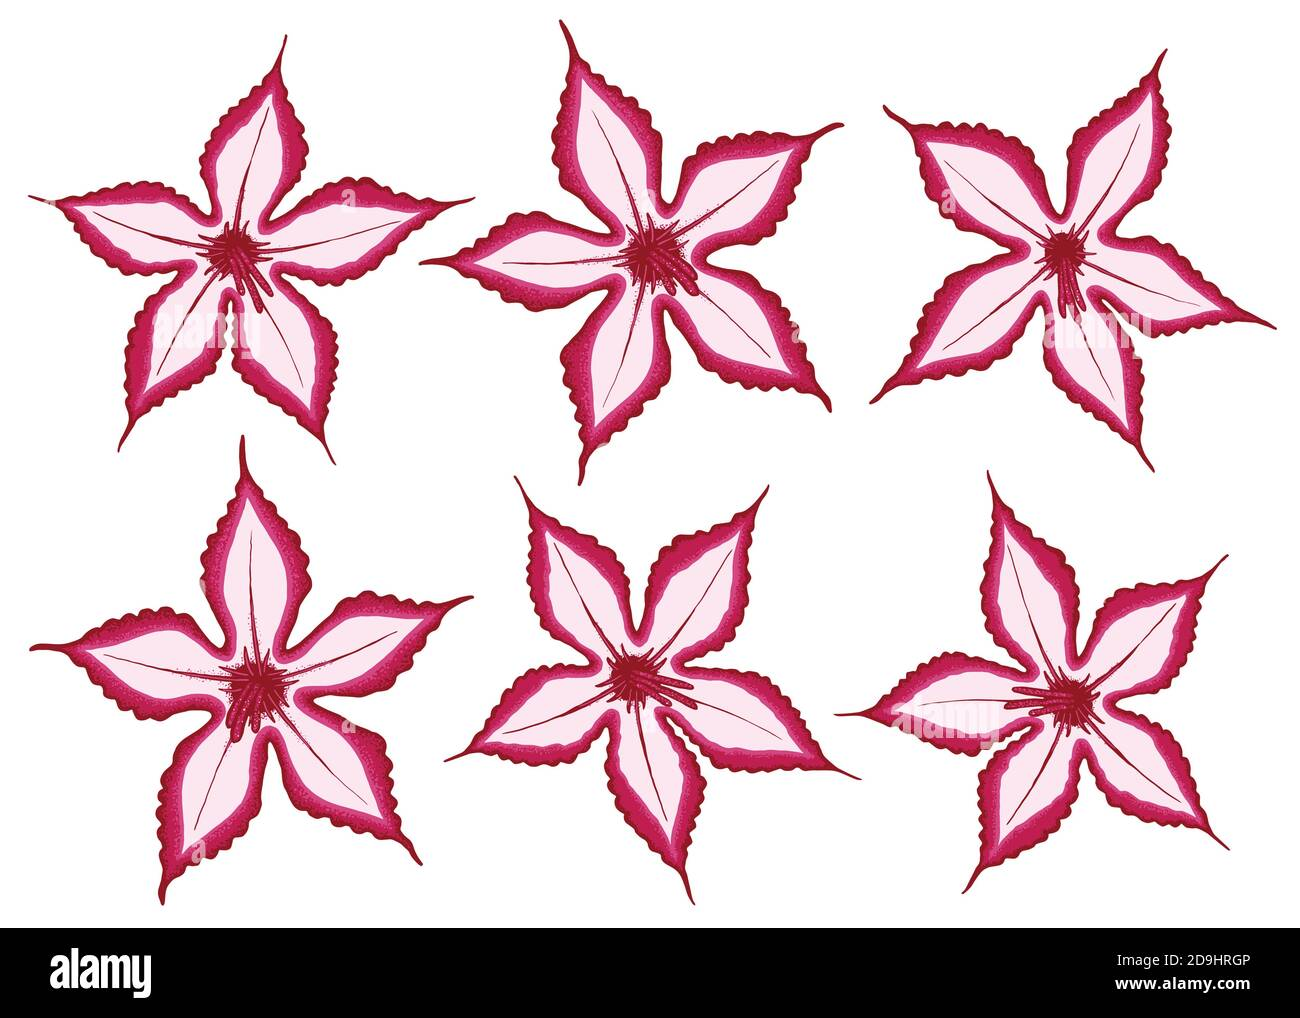 Impala Lily illustration. Set of 6 abstract lily flower vector illustration isolated on white background. Stock Vector